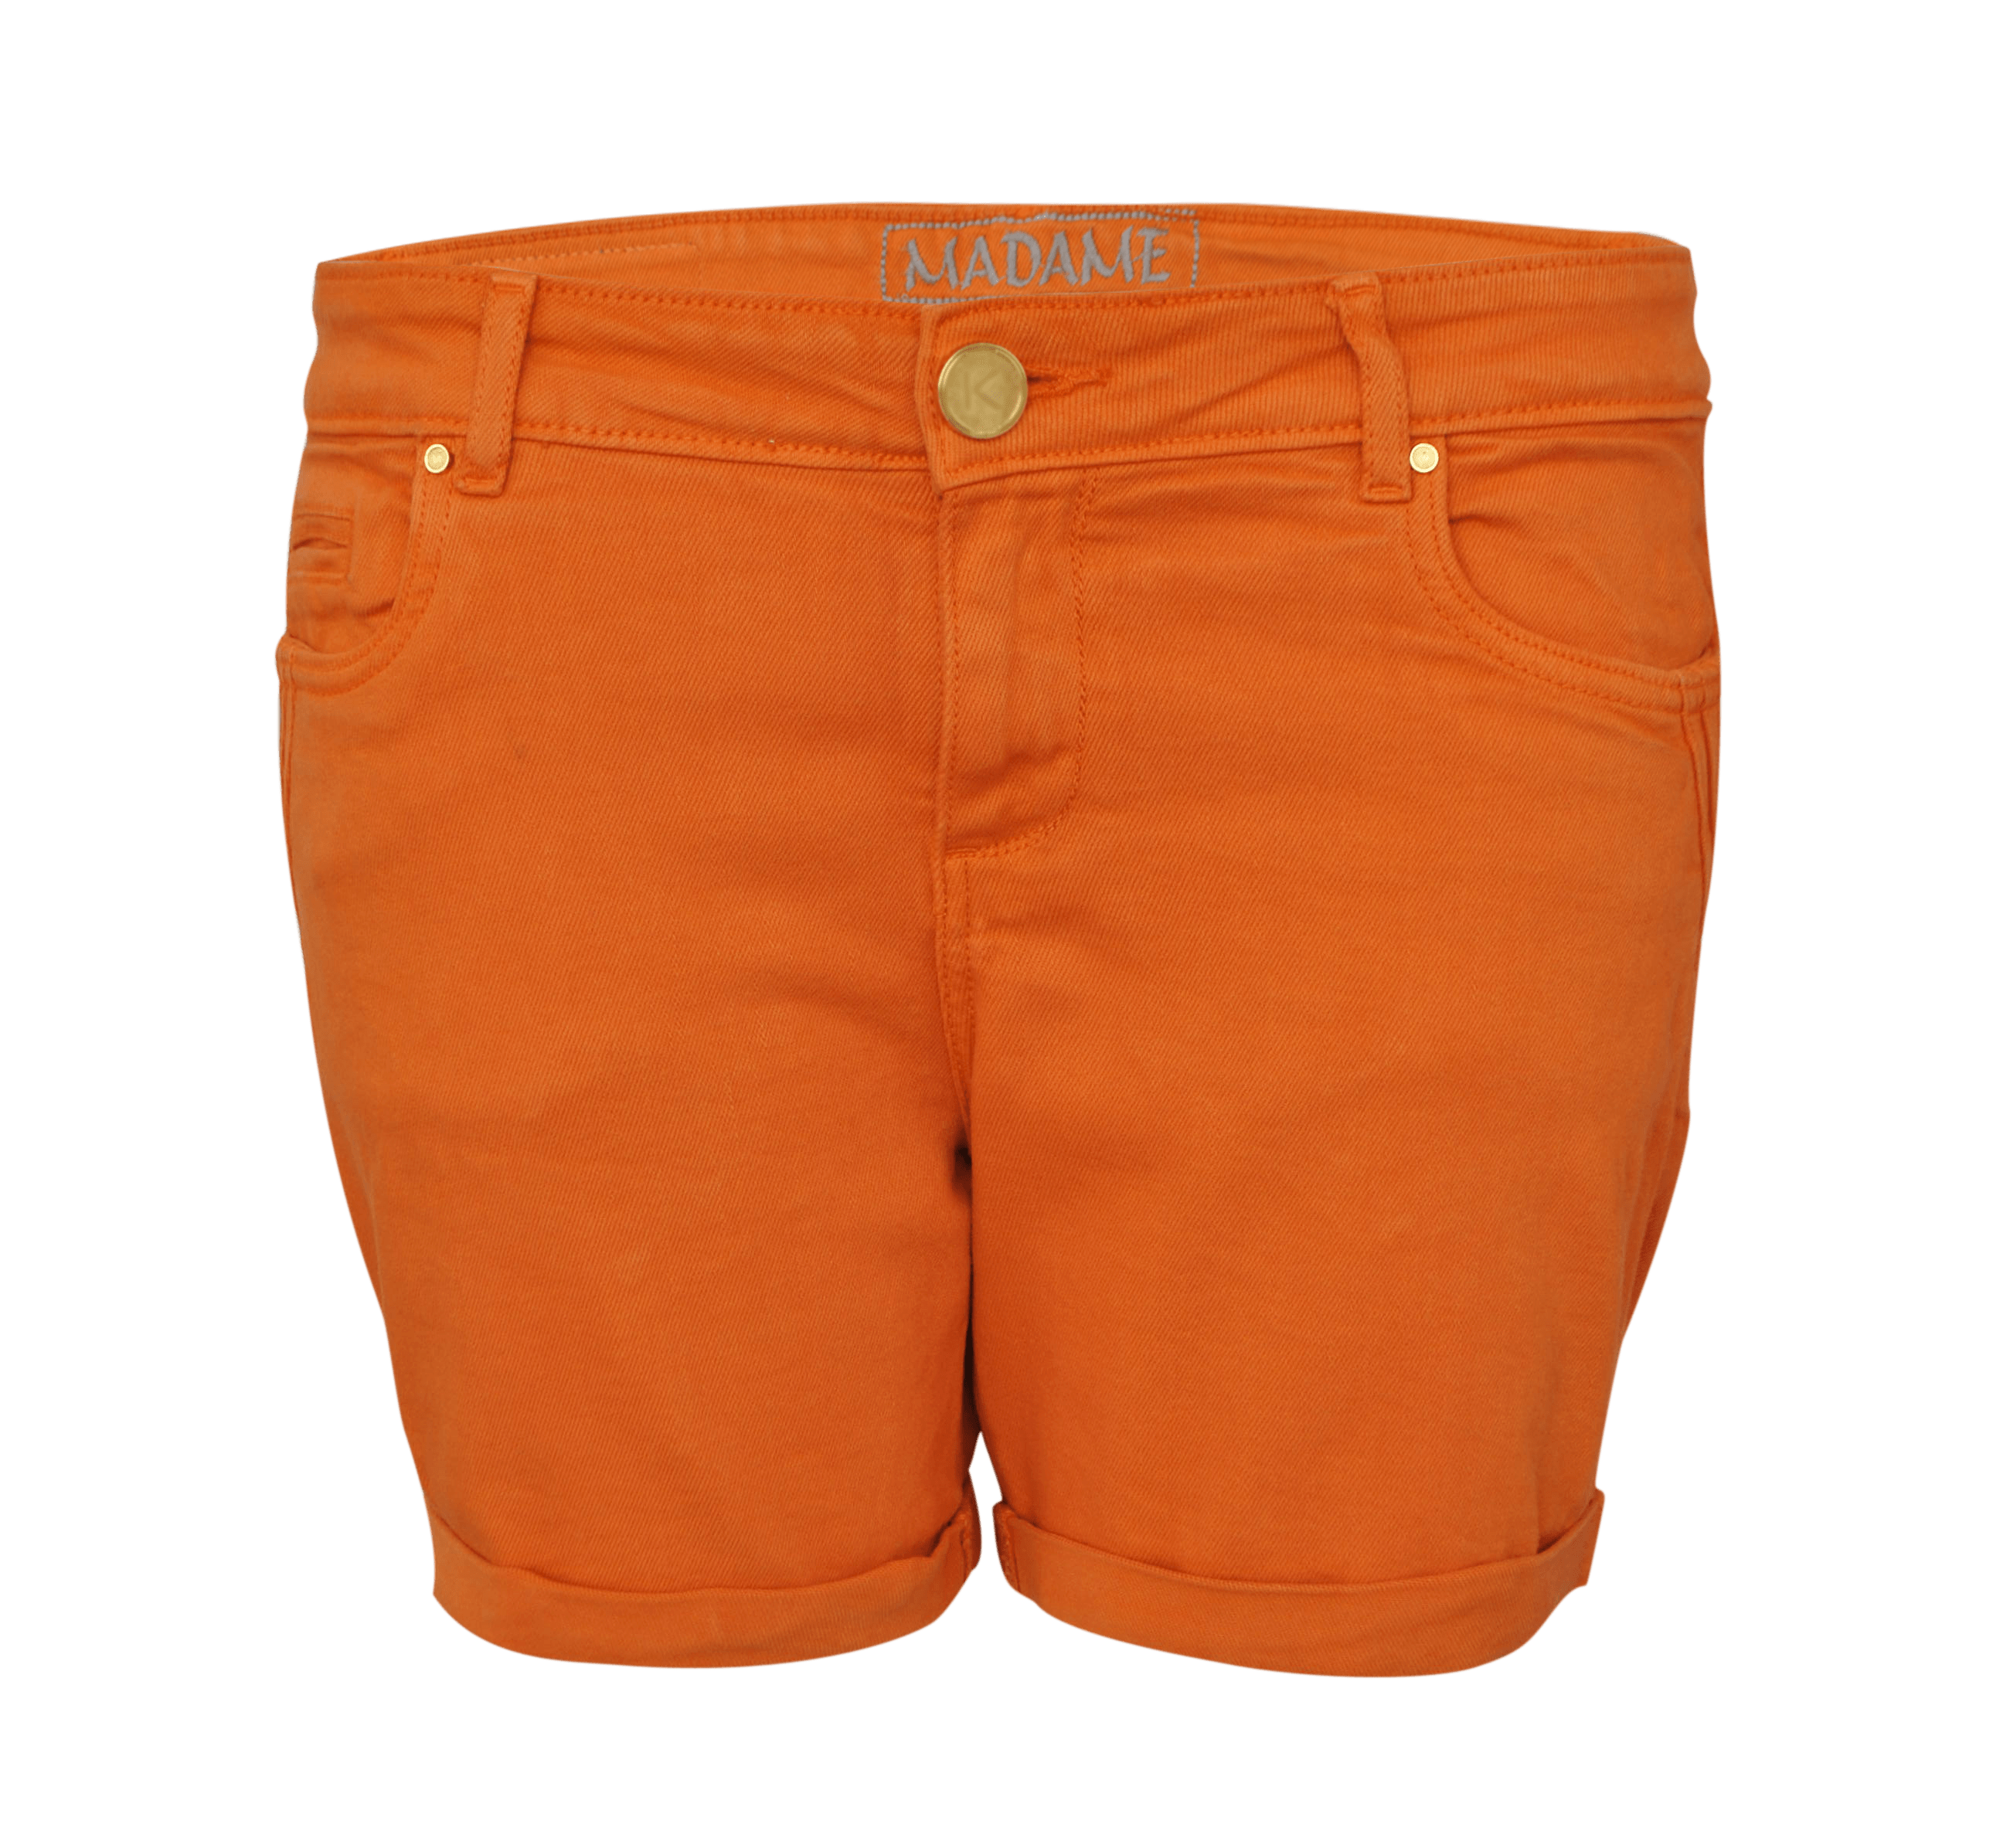 Football pants clipart picture royalty free Short Pant Orange transparent PNG - StickPNG picture royalty free